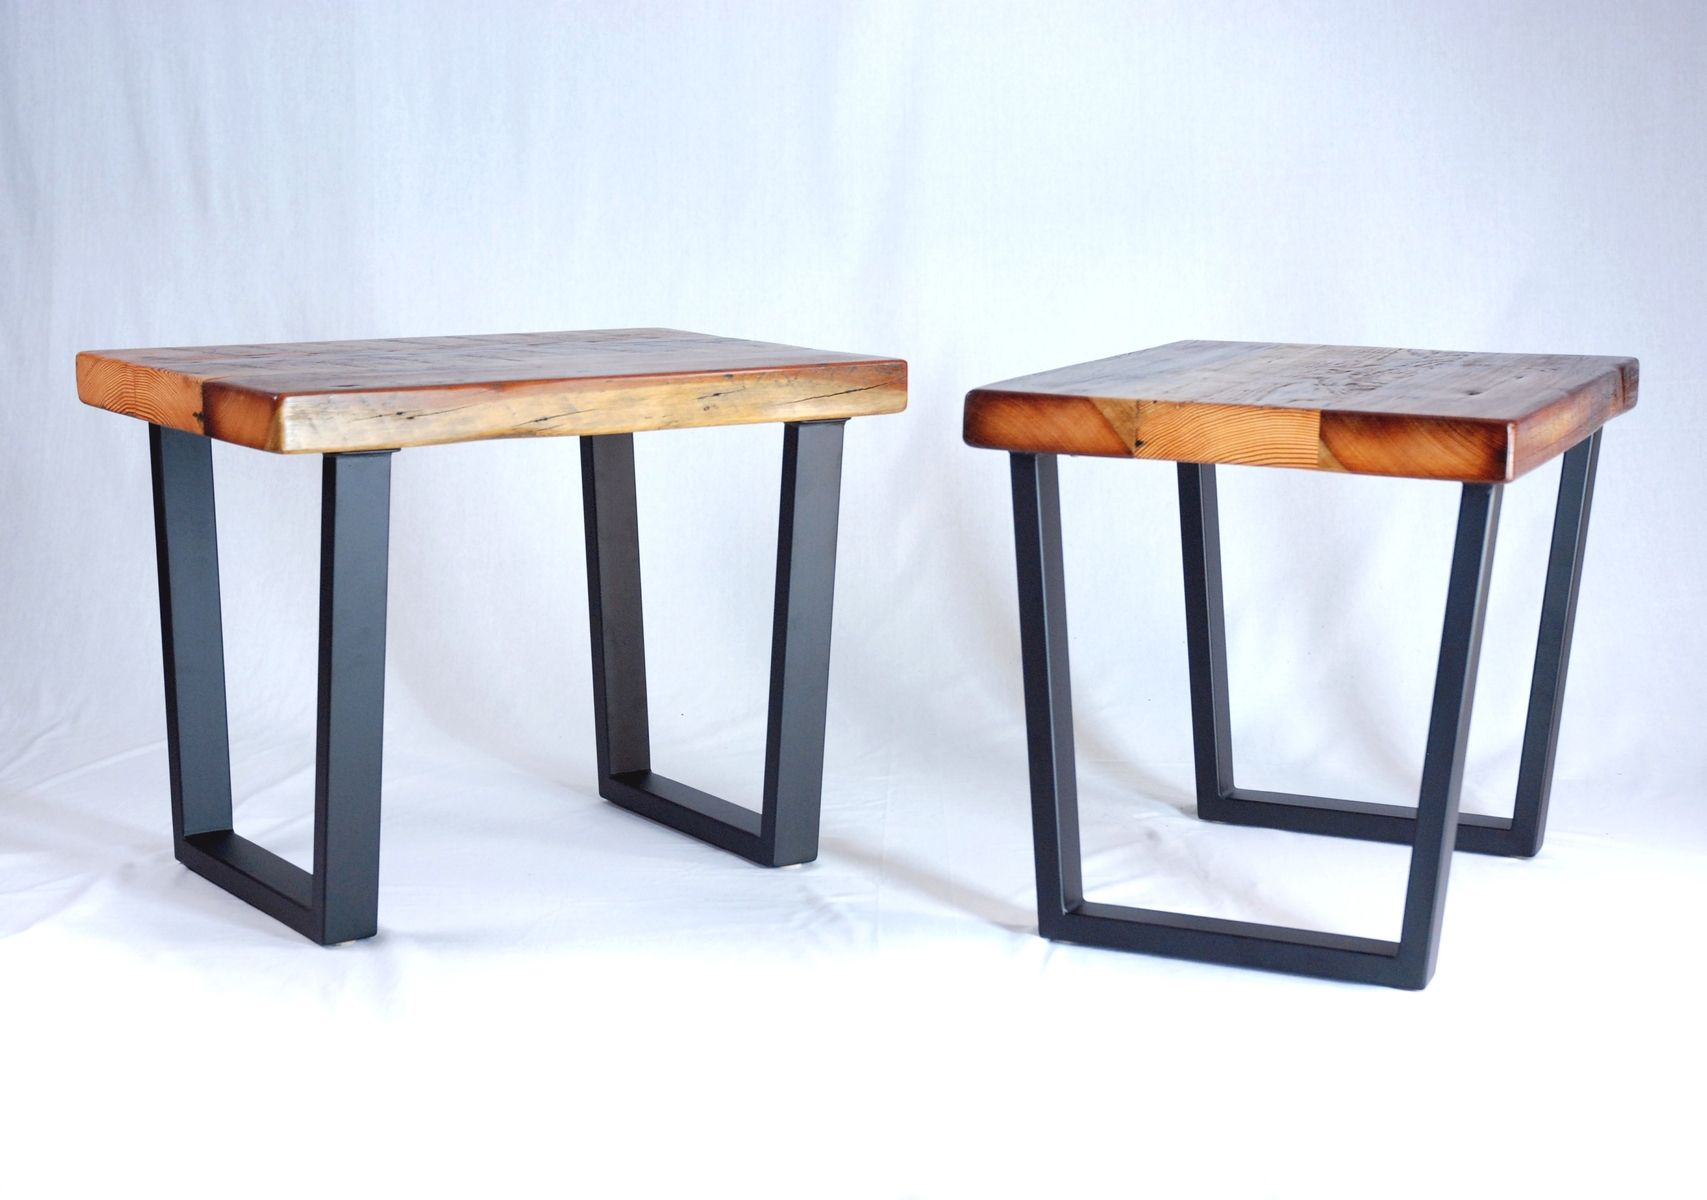 Custom Industrial Reclaimed Timber End Table Set by Jonathan